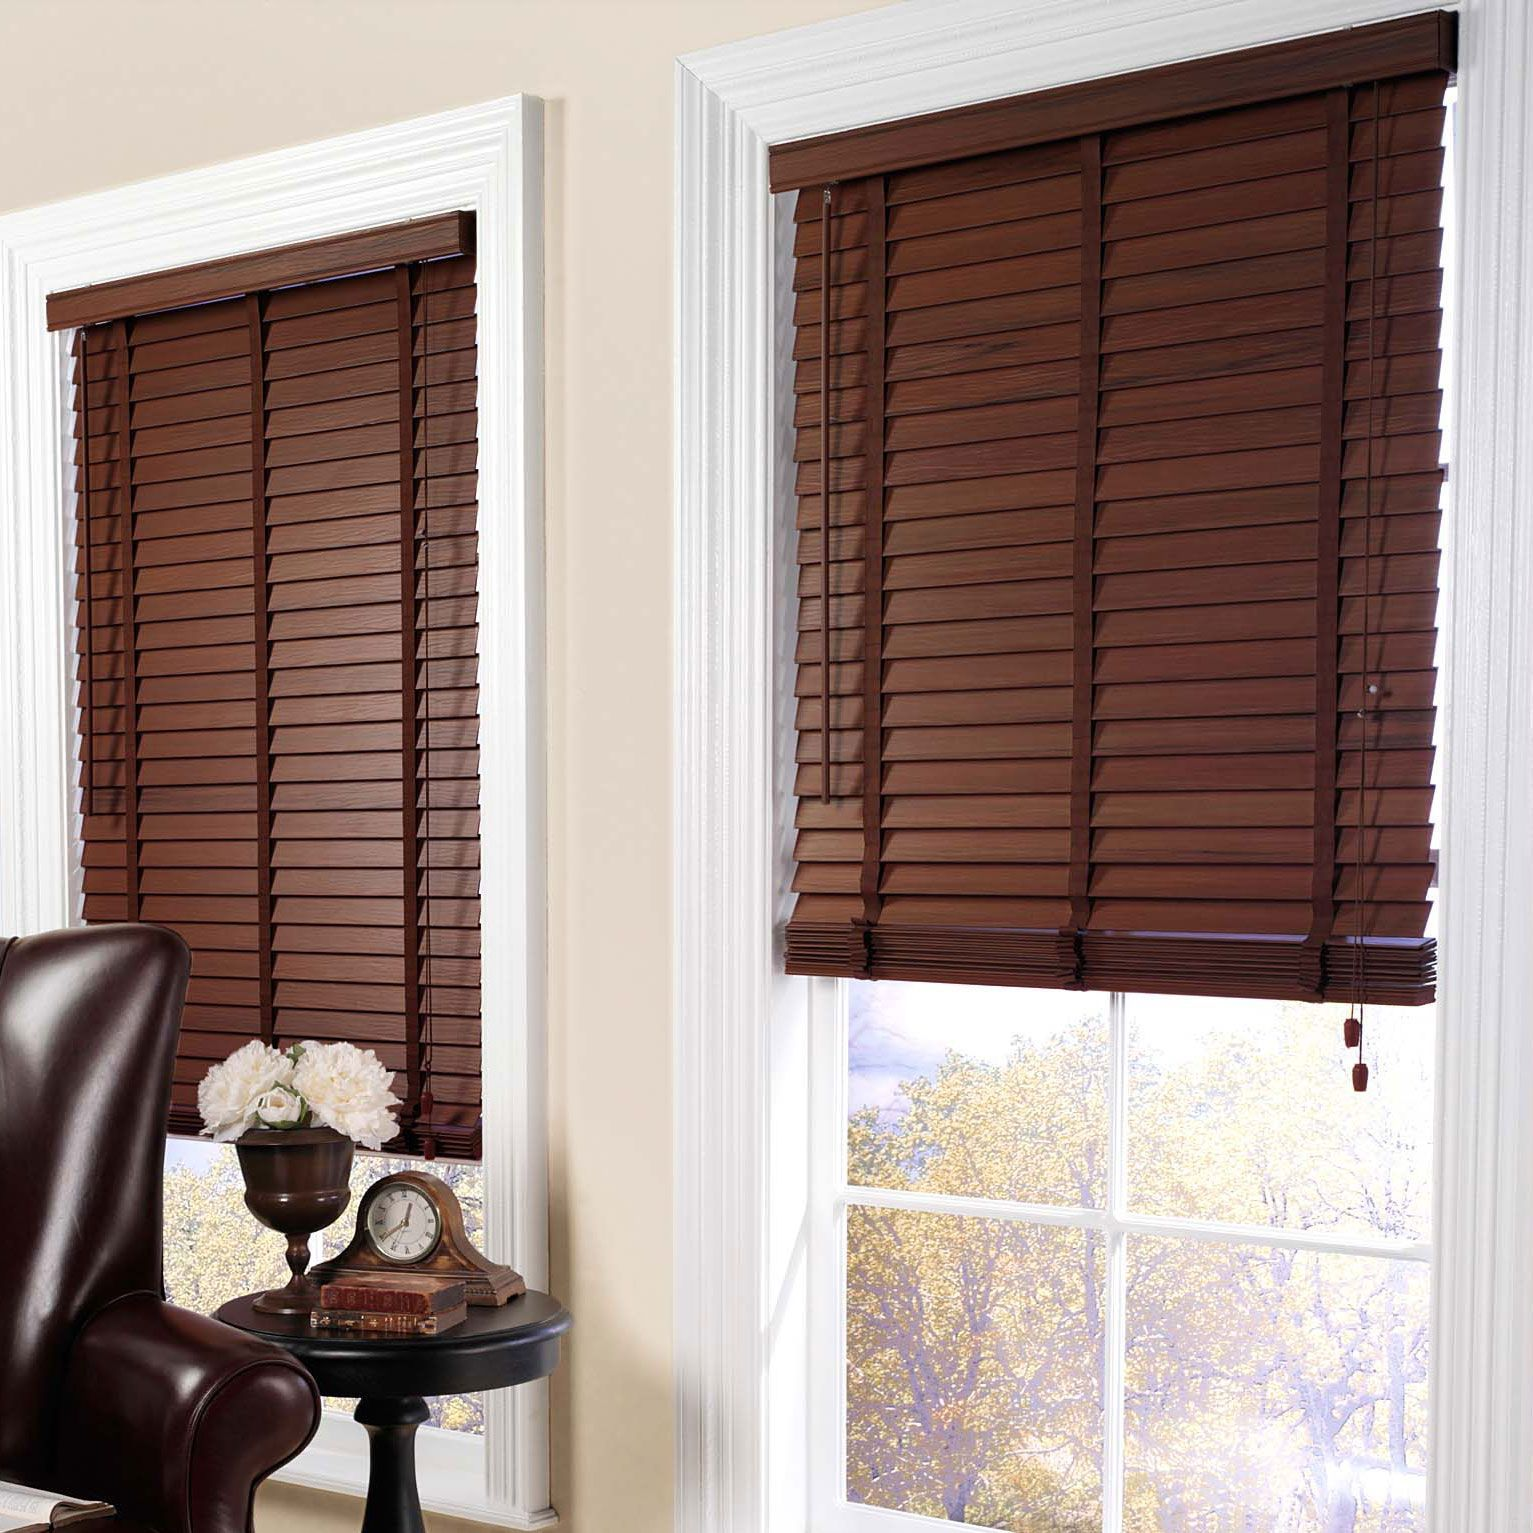 These Dark Wood Blinds Have Great Contrast Against The